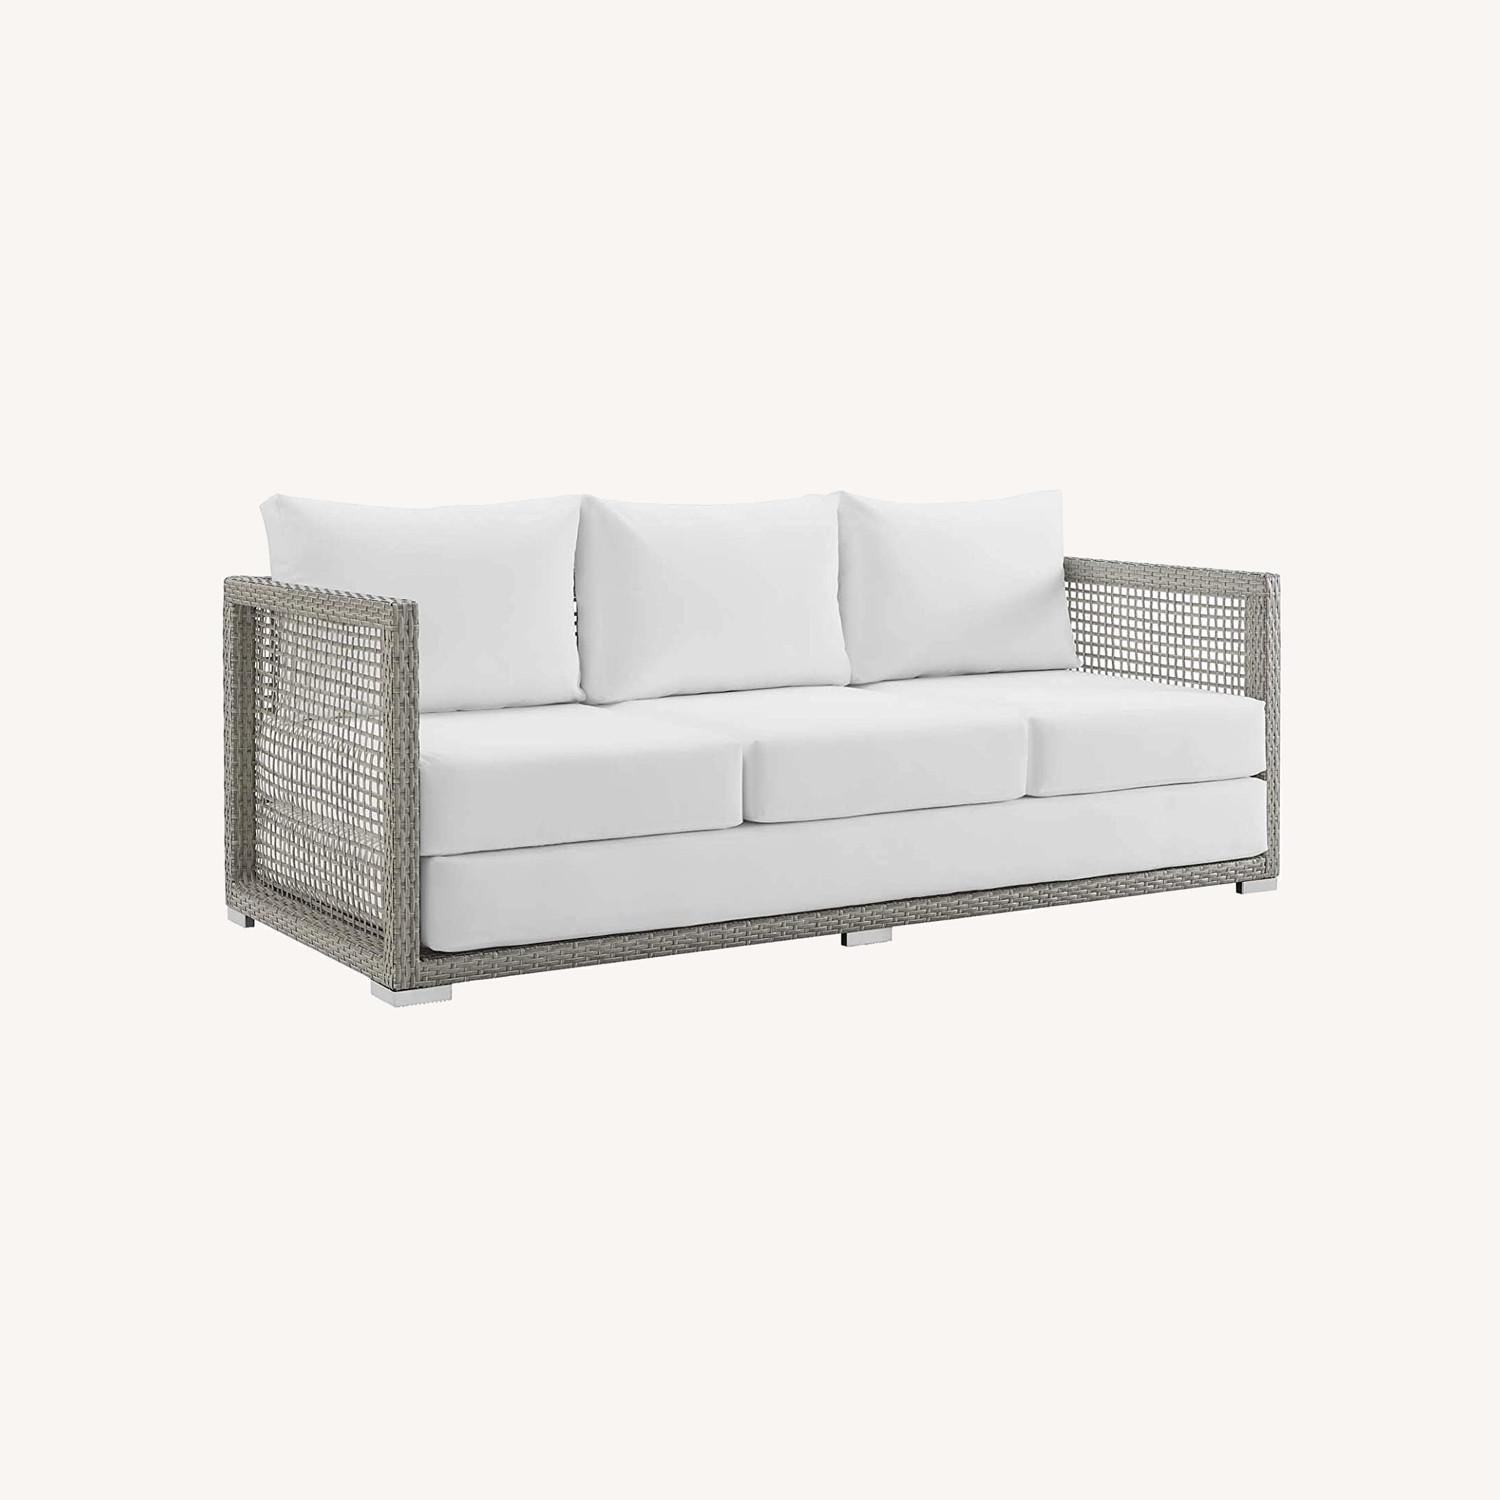 Outdoor Sofa In Gray Rattan Weave Finish - image-9